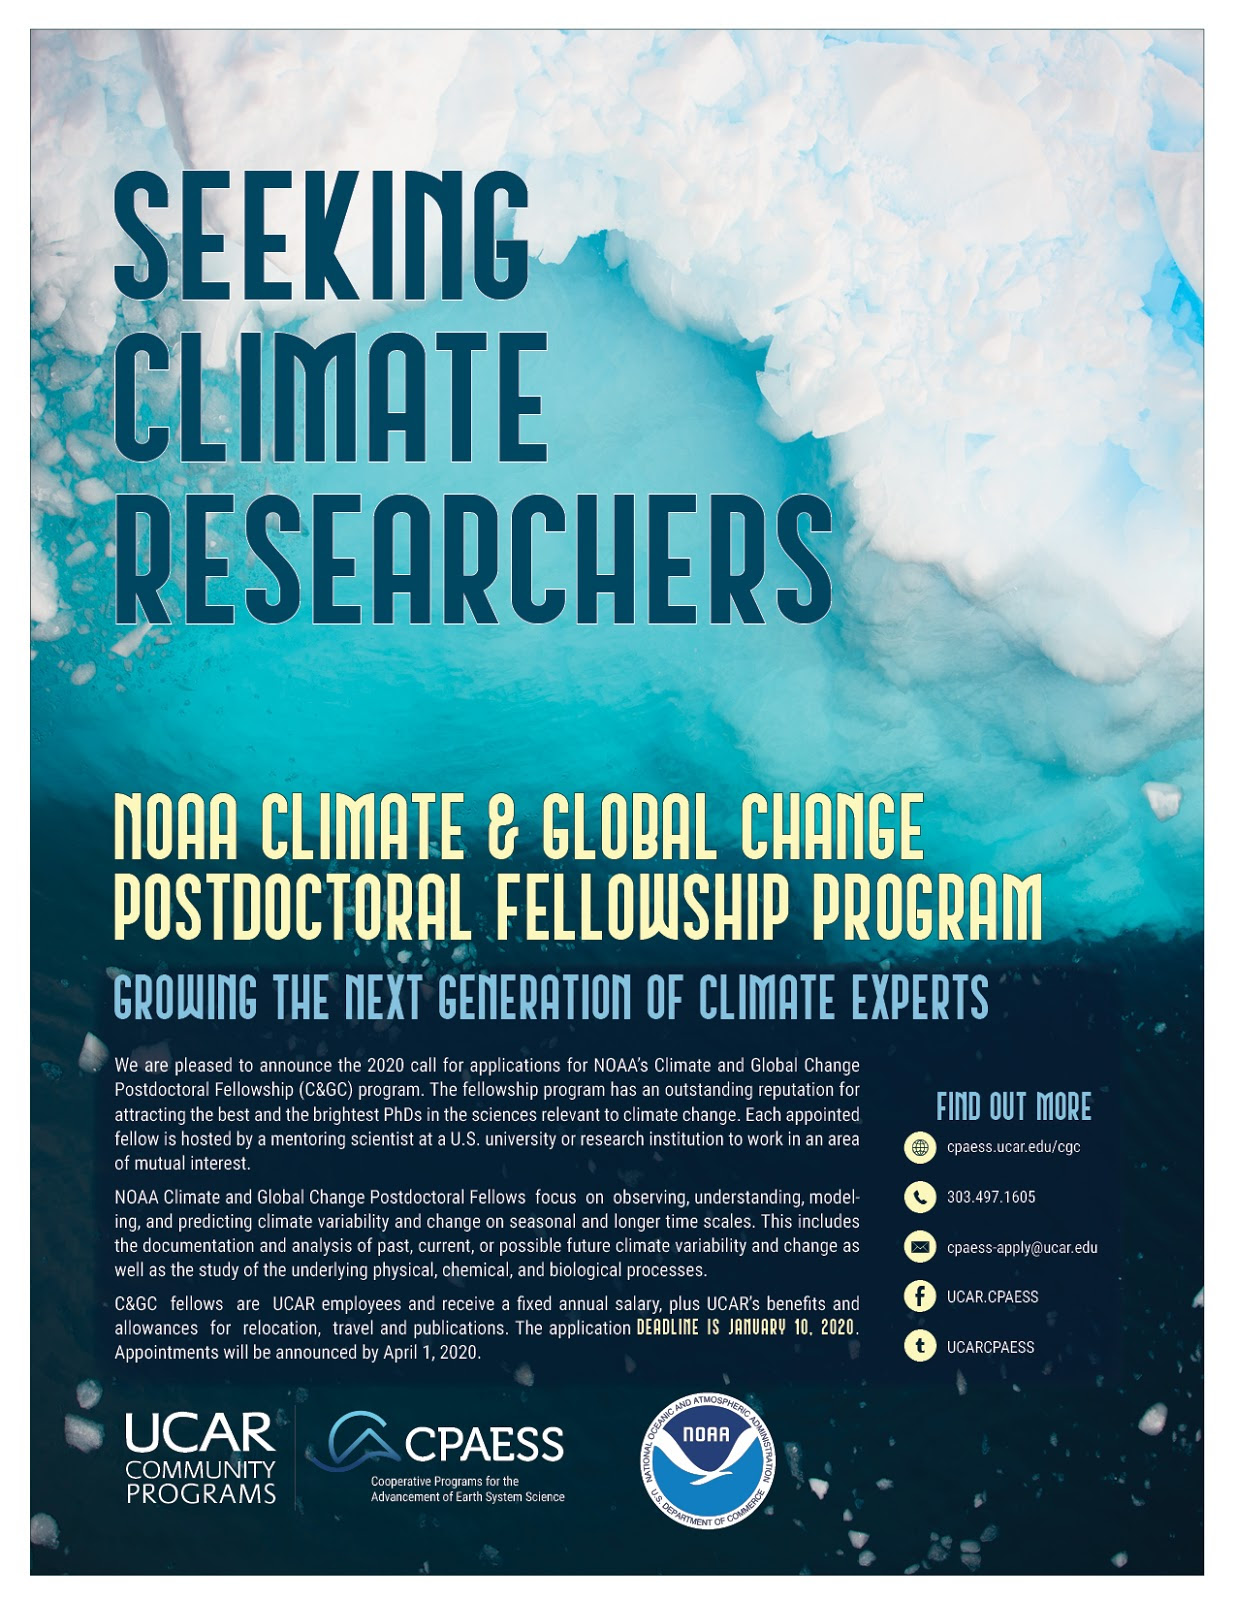 NOAA_C&GCpostdoc_recruitment